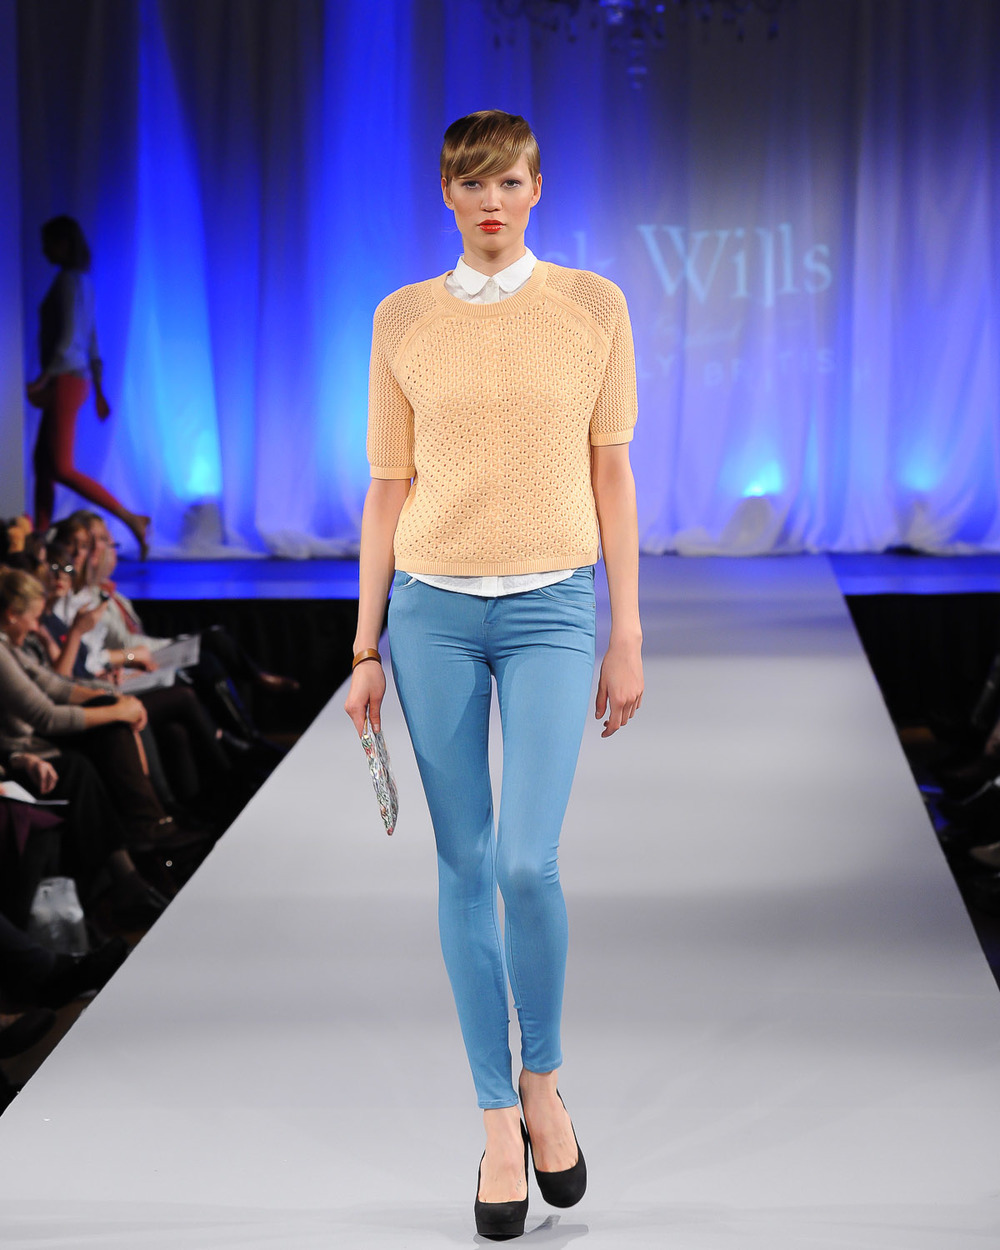 bath-in-fashion-spring-summer-3.jpg